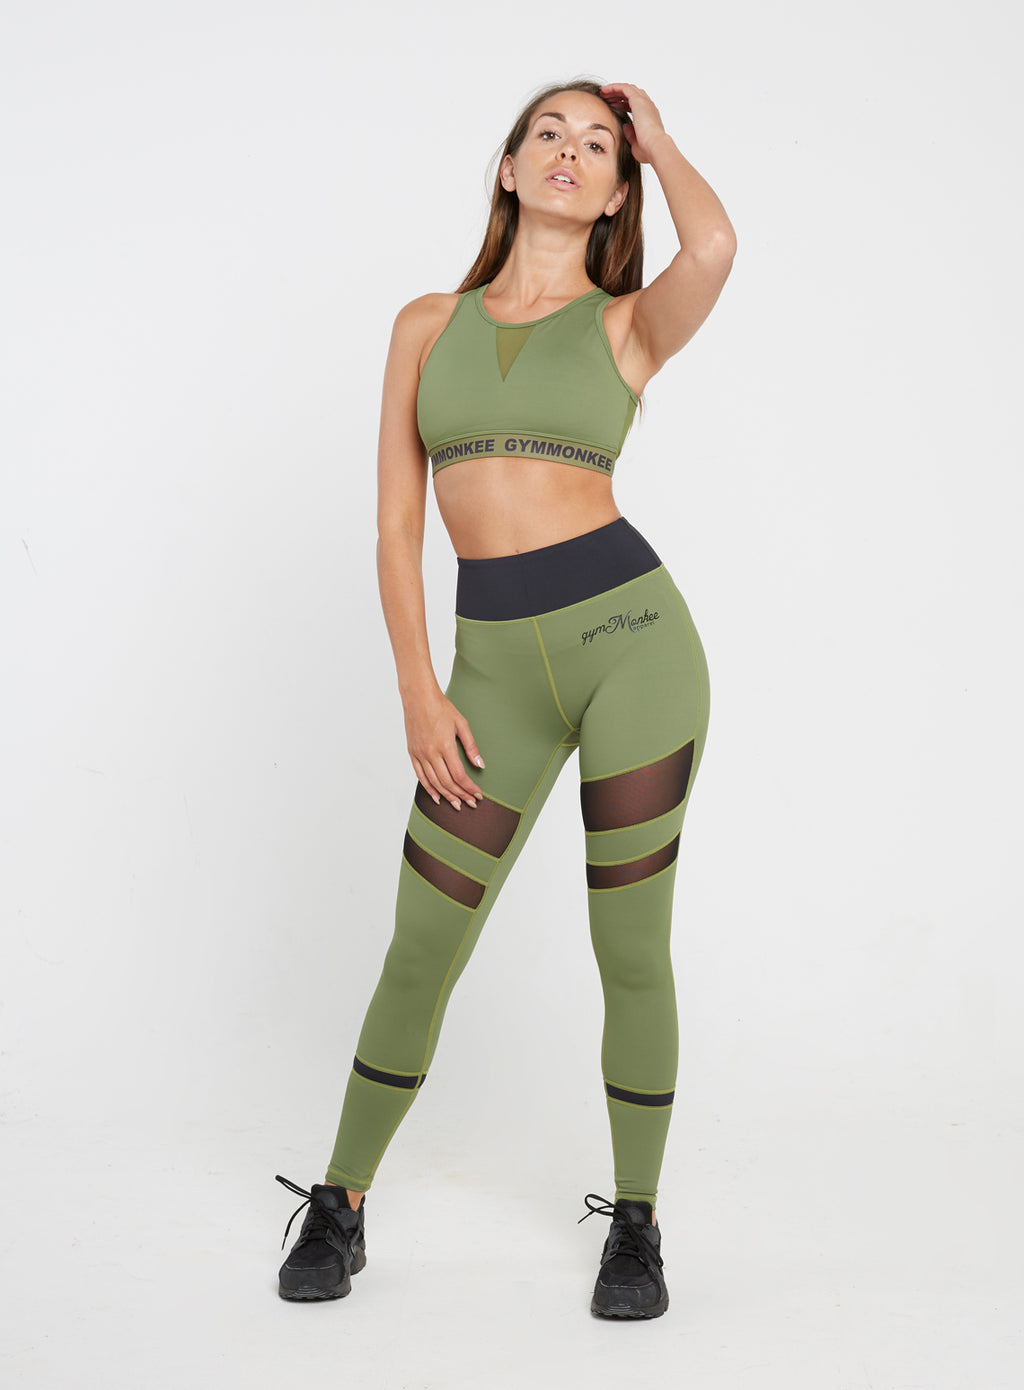 Gym Monkee - Ladies Black and Khaki Leggings FRONT MOVING